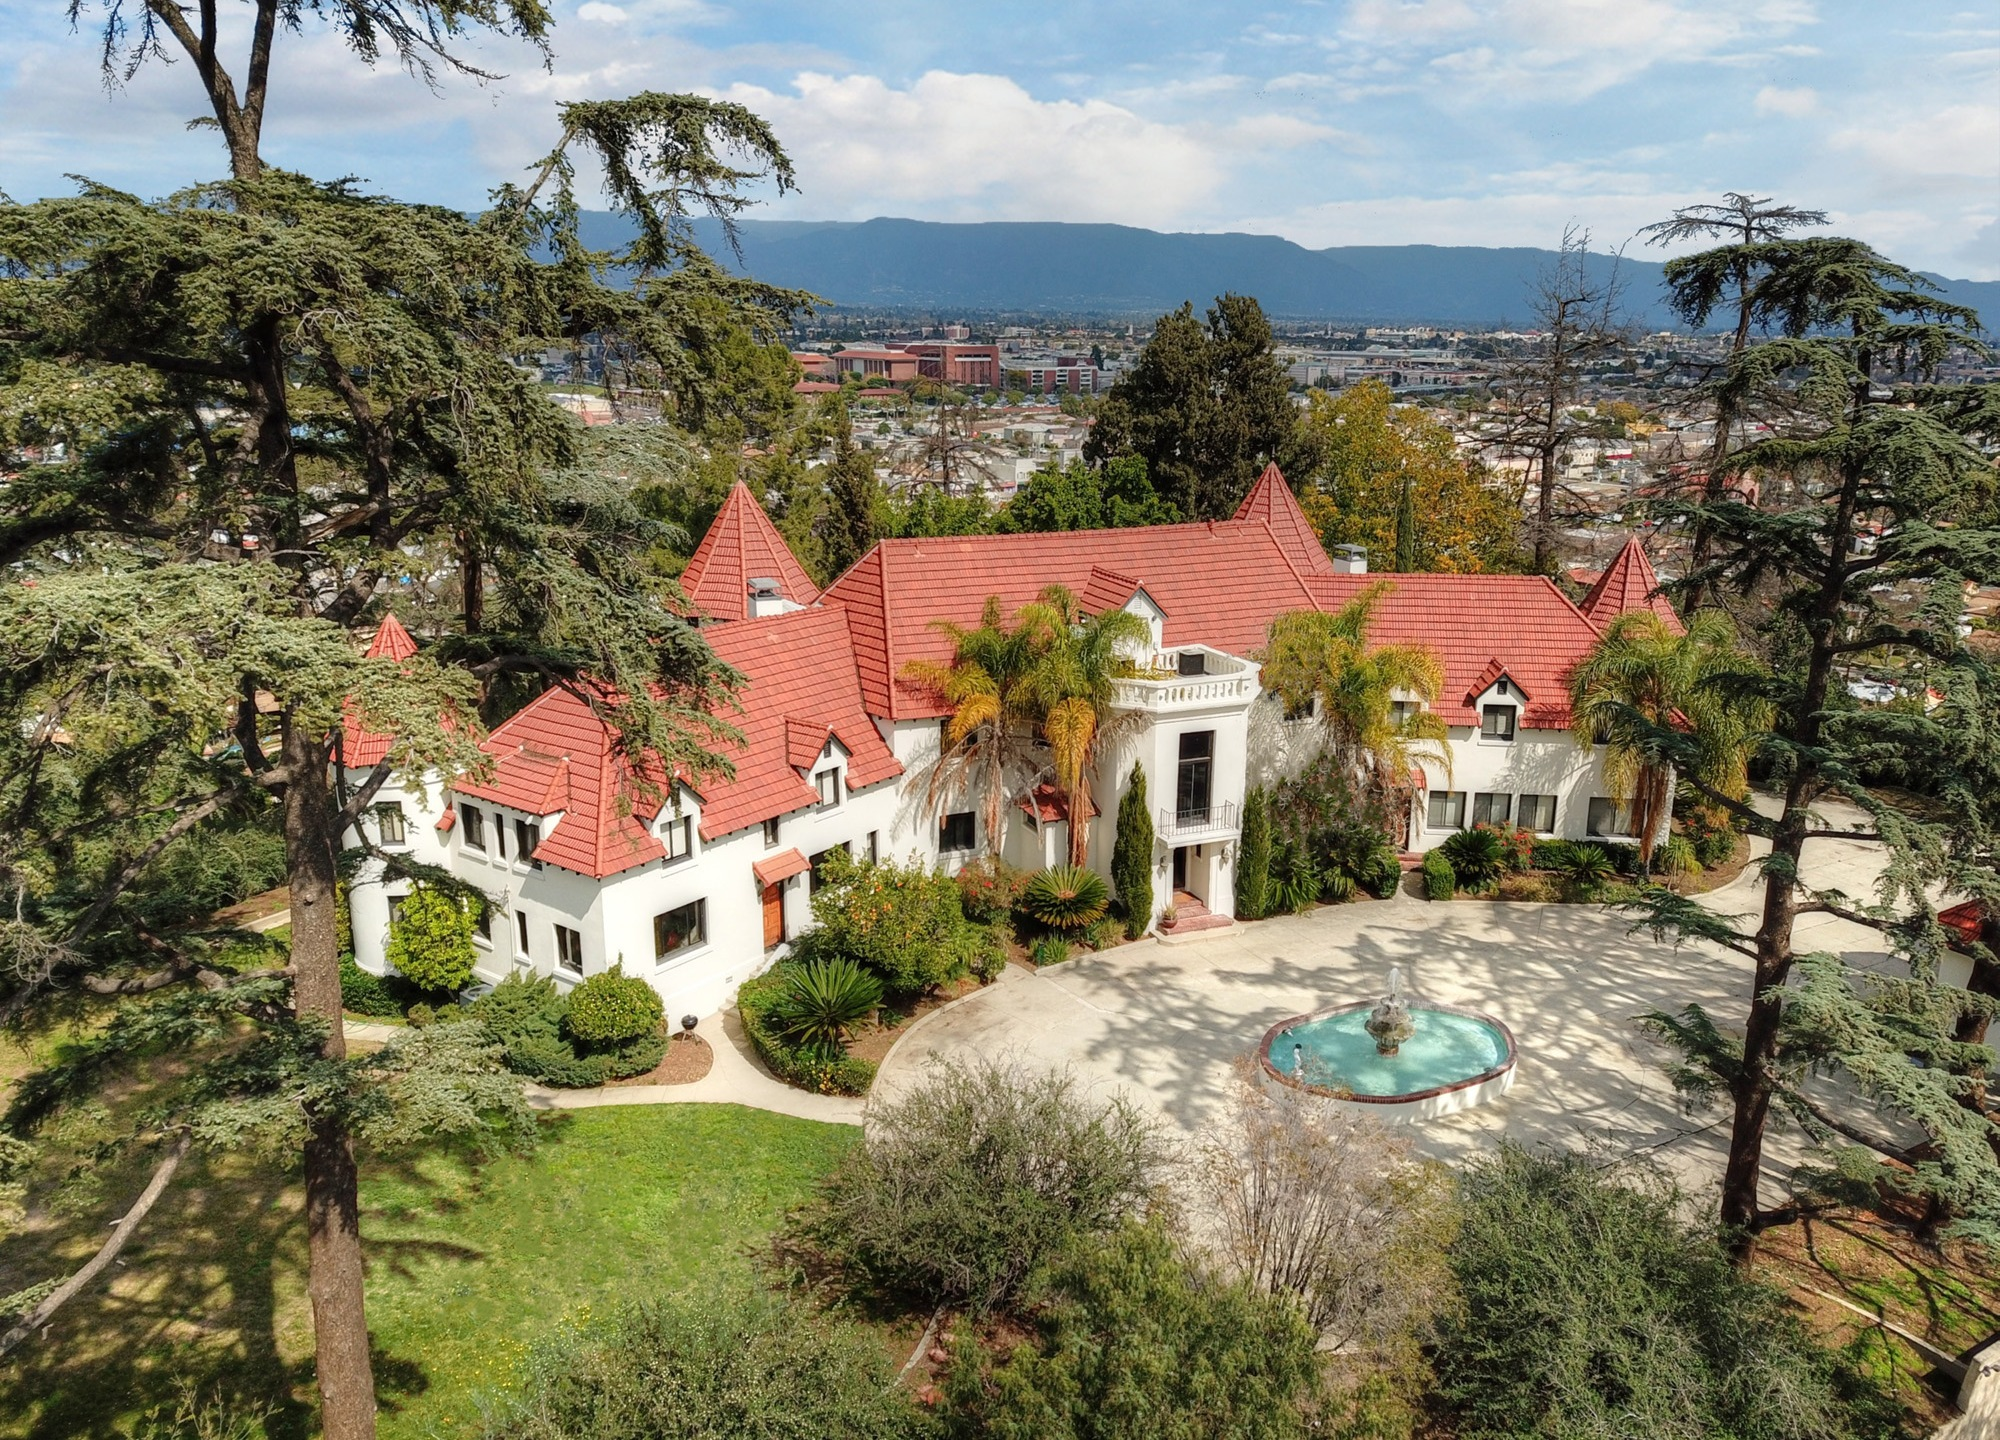 The 1925 mansion in Alhambra known as the Pyrenees Castle is seen in an undated photo. (Credit: Jeremy Spann / thecastleonthehill.com)